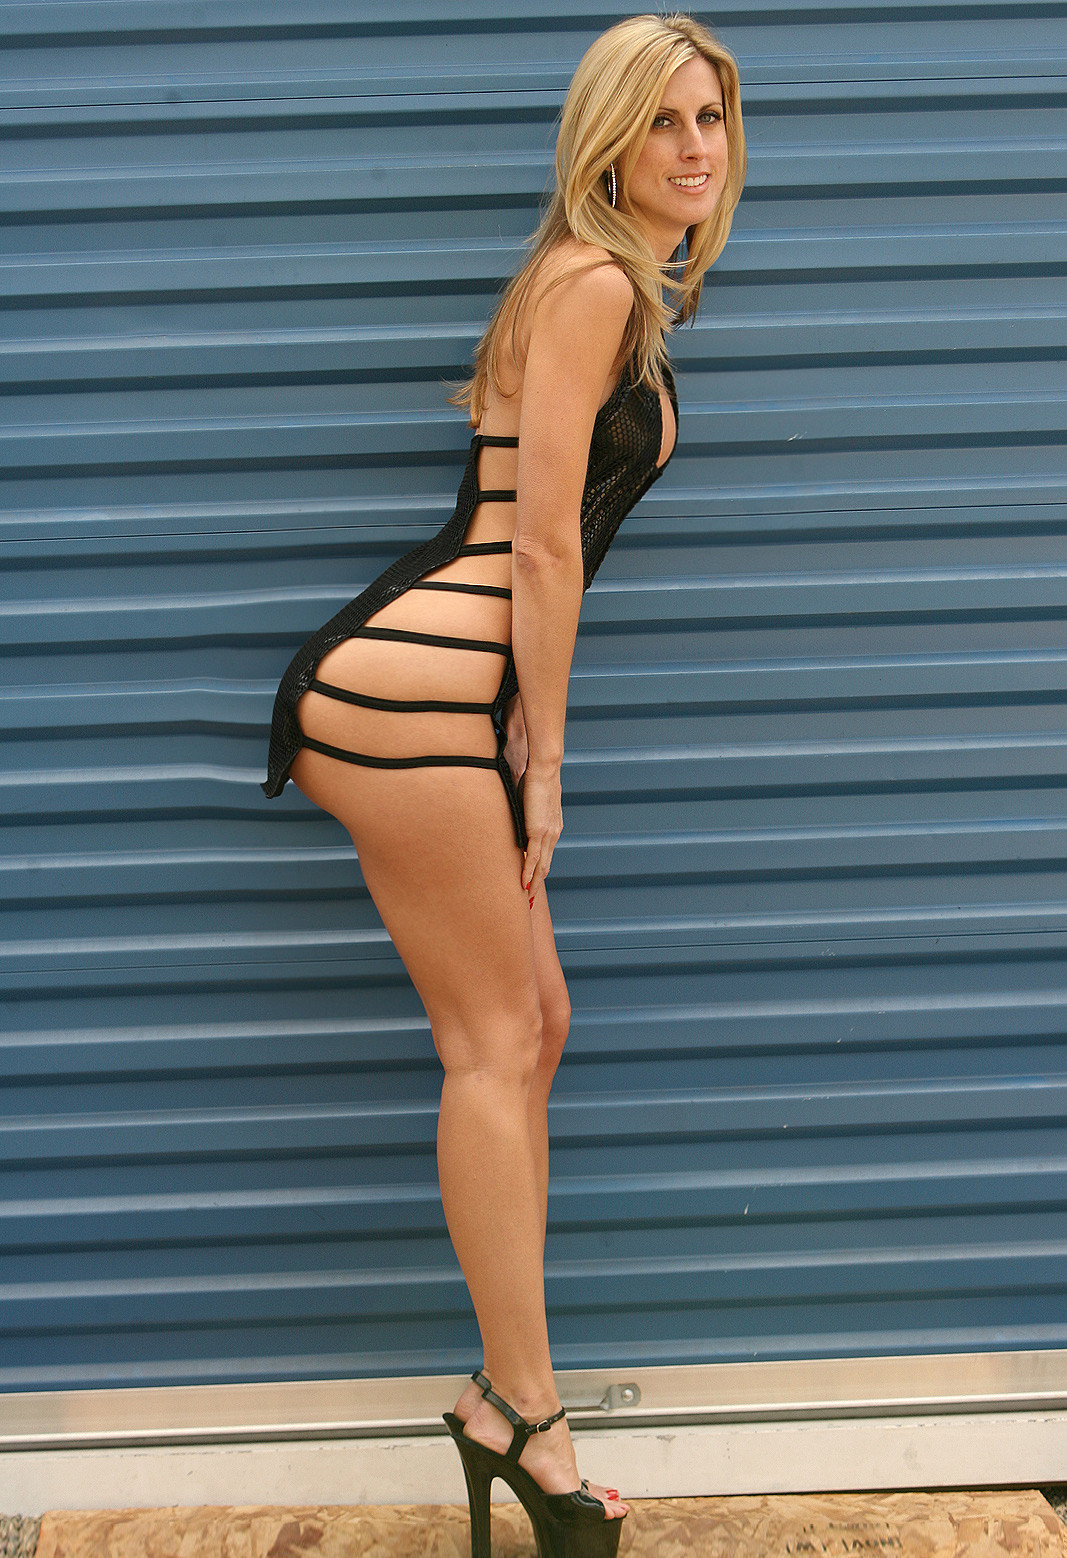 Blonde milf in dress teasing